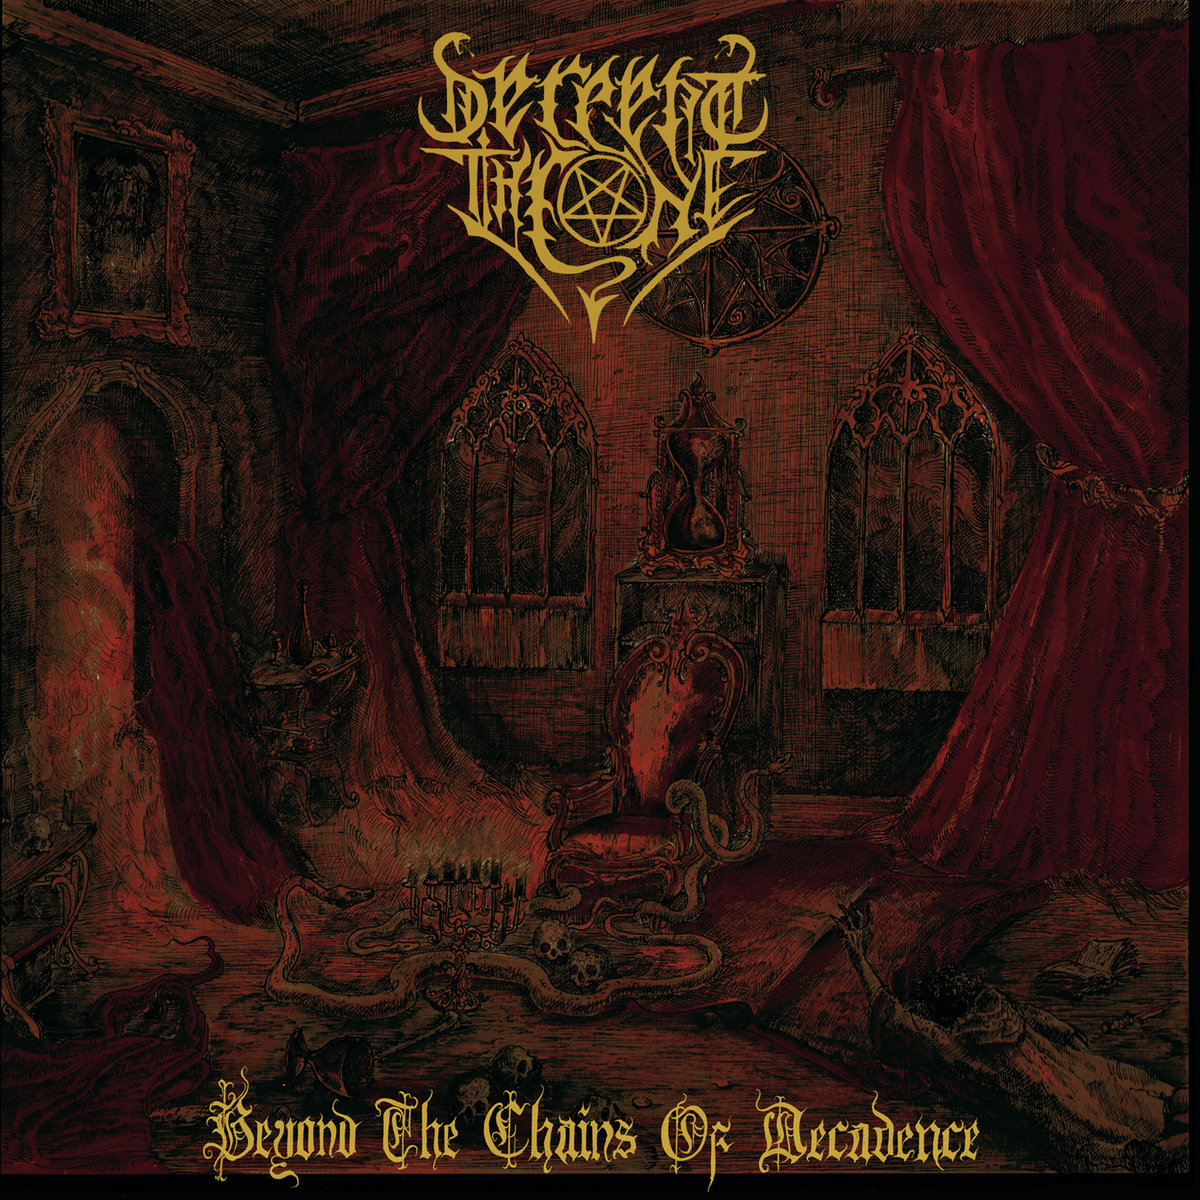 Serpent Throne - Beyond the Chains of Decadence (2020)